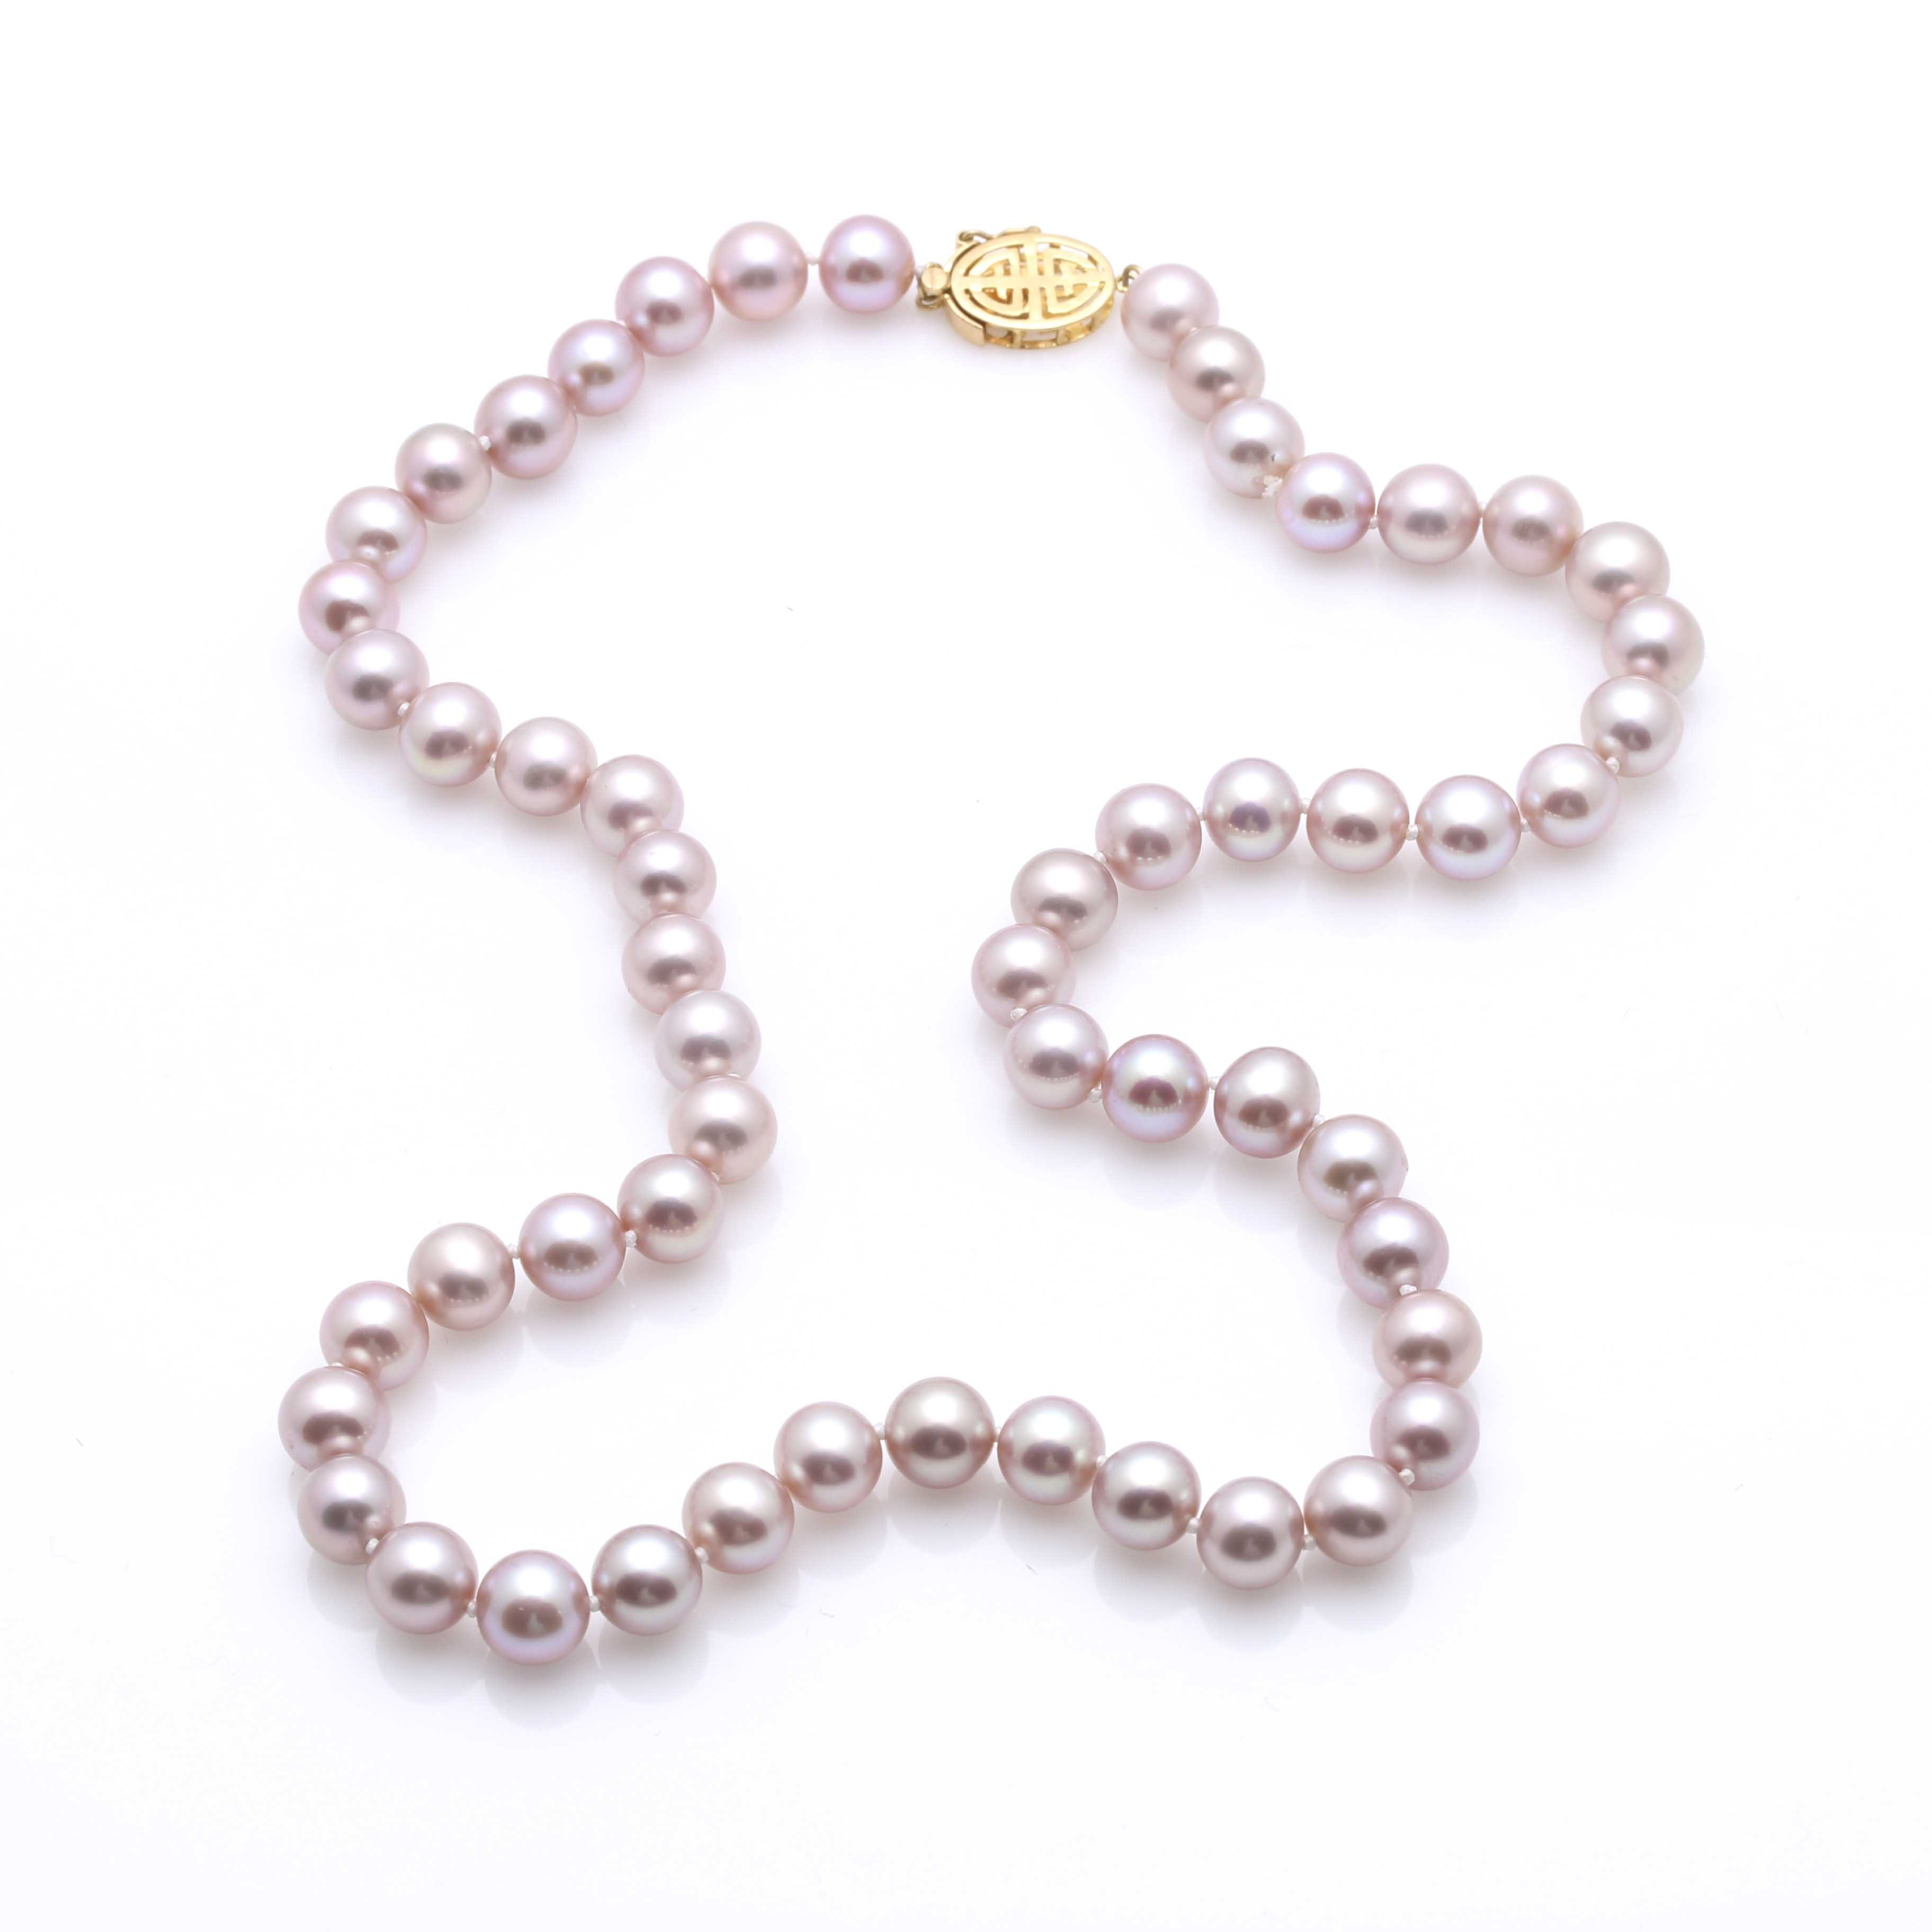 14K Yellow Gold Cultured Freshwater Pearl Necklace